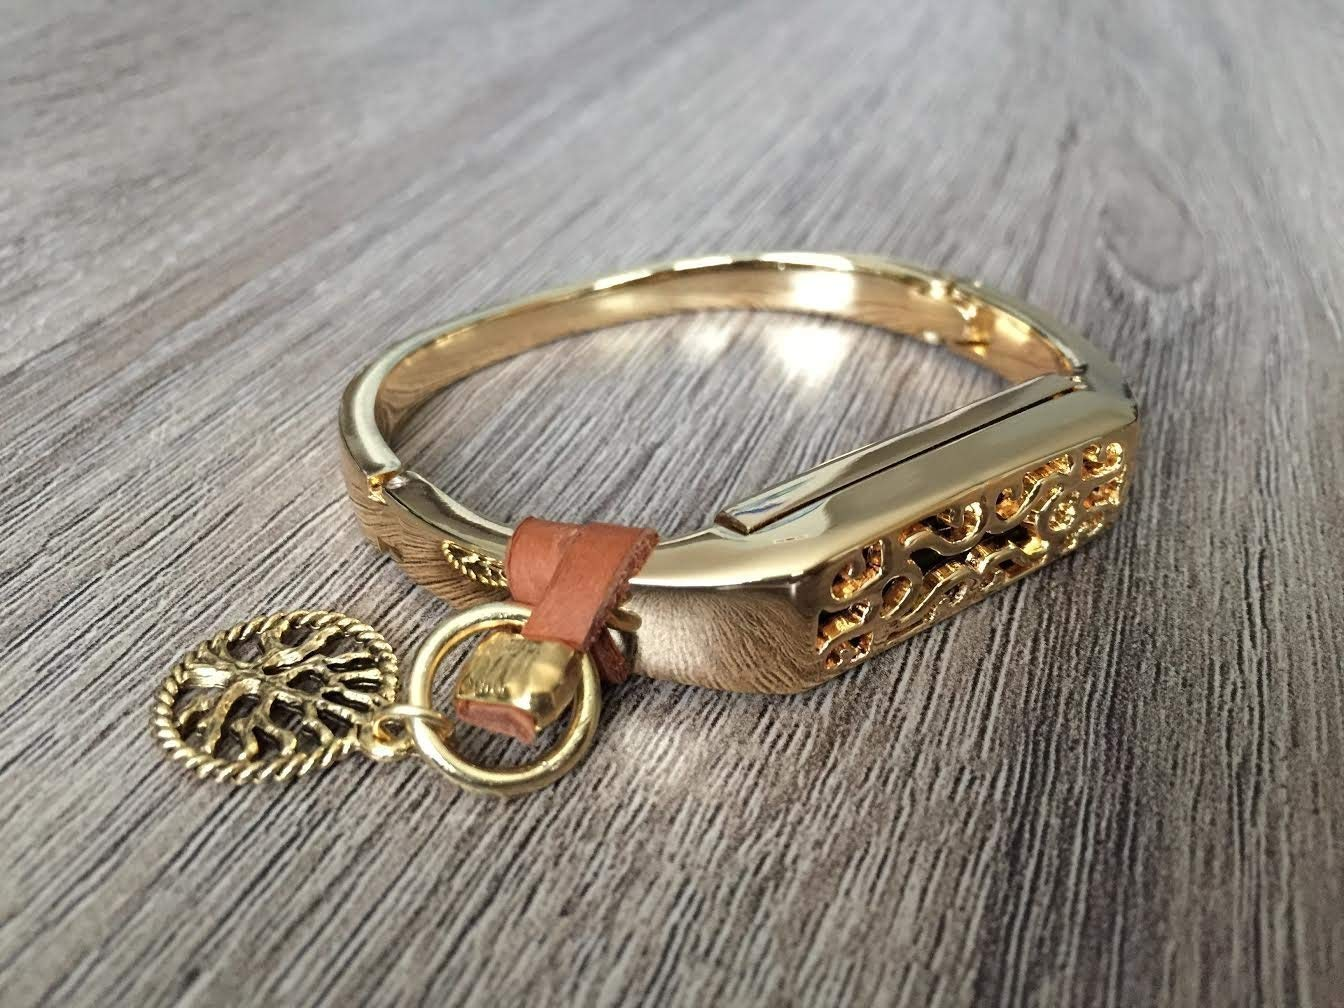 Gold Metal Band For Fitbit Flex 2 Activity Tracker Handmade Fashion Luxury Jewelry Fitbit Flex 2 Band Brown Genuine Leather Strap /& Gold Vintage Tree Of Life Charm Fitbit Flex 2 Bracelet